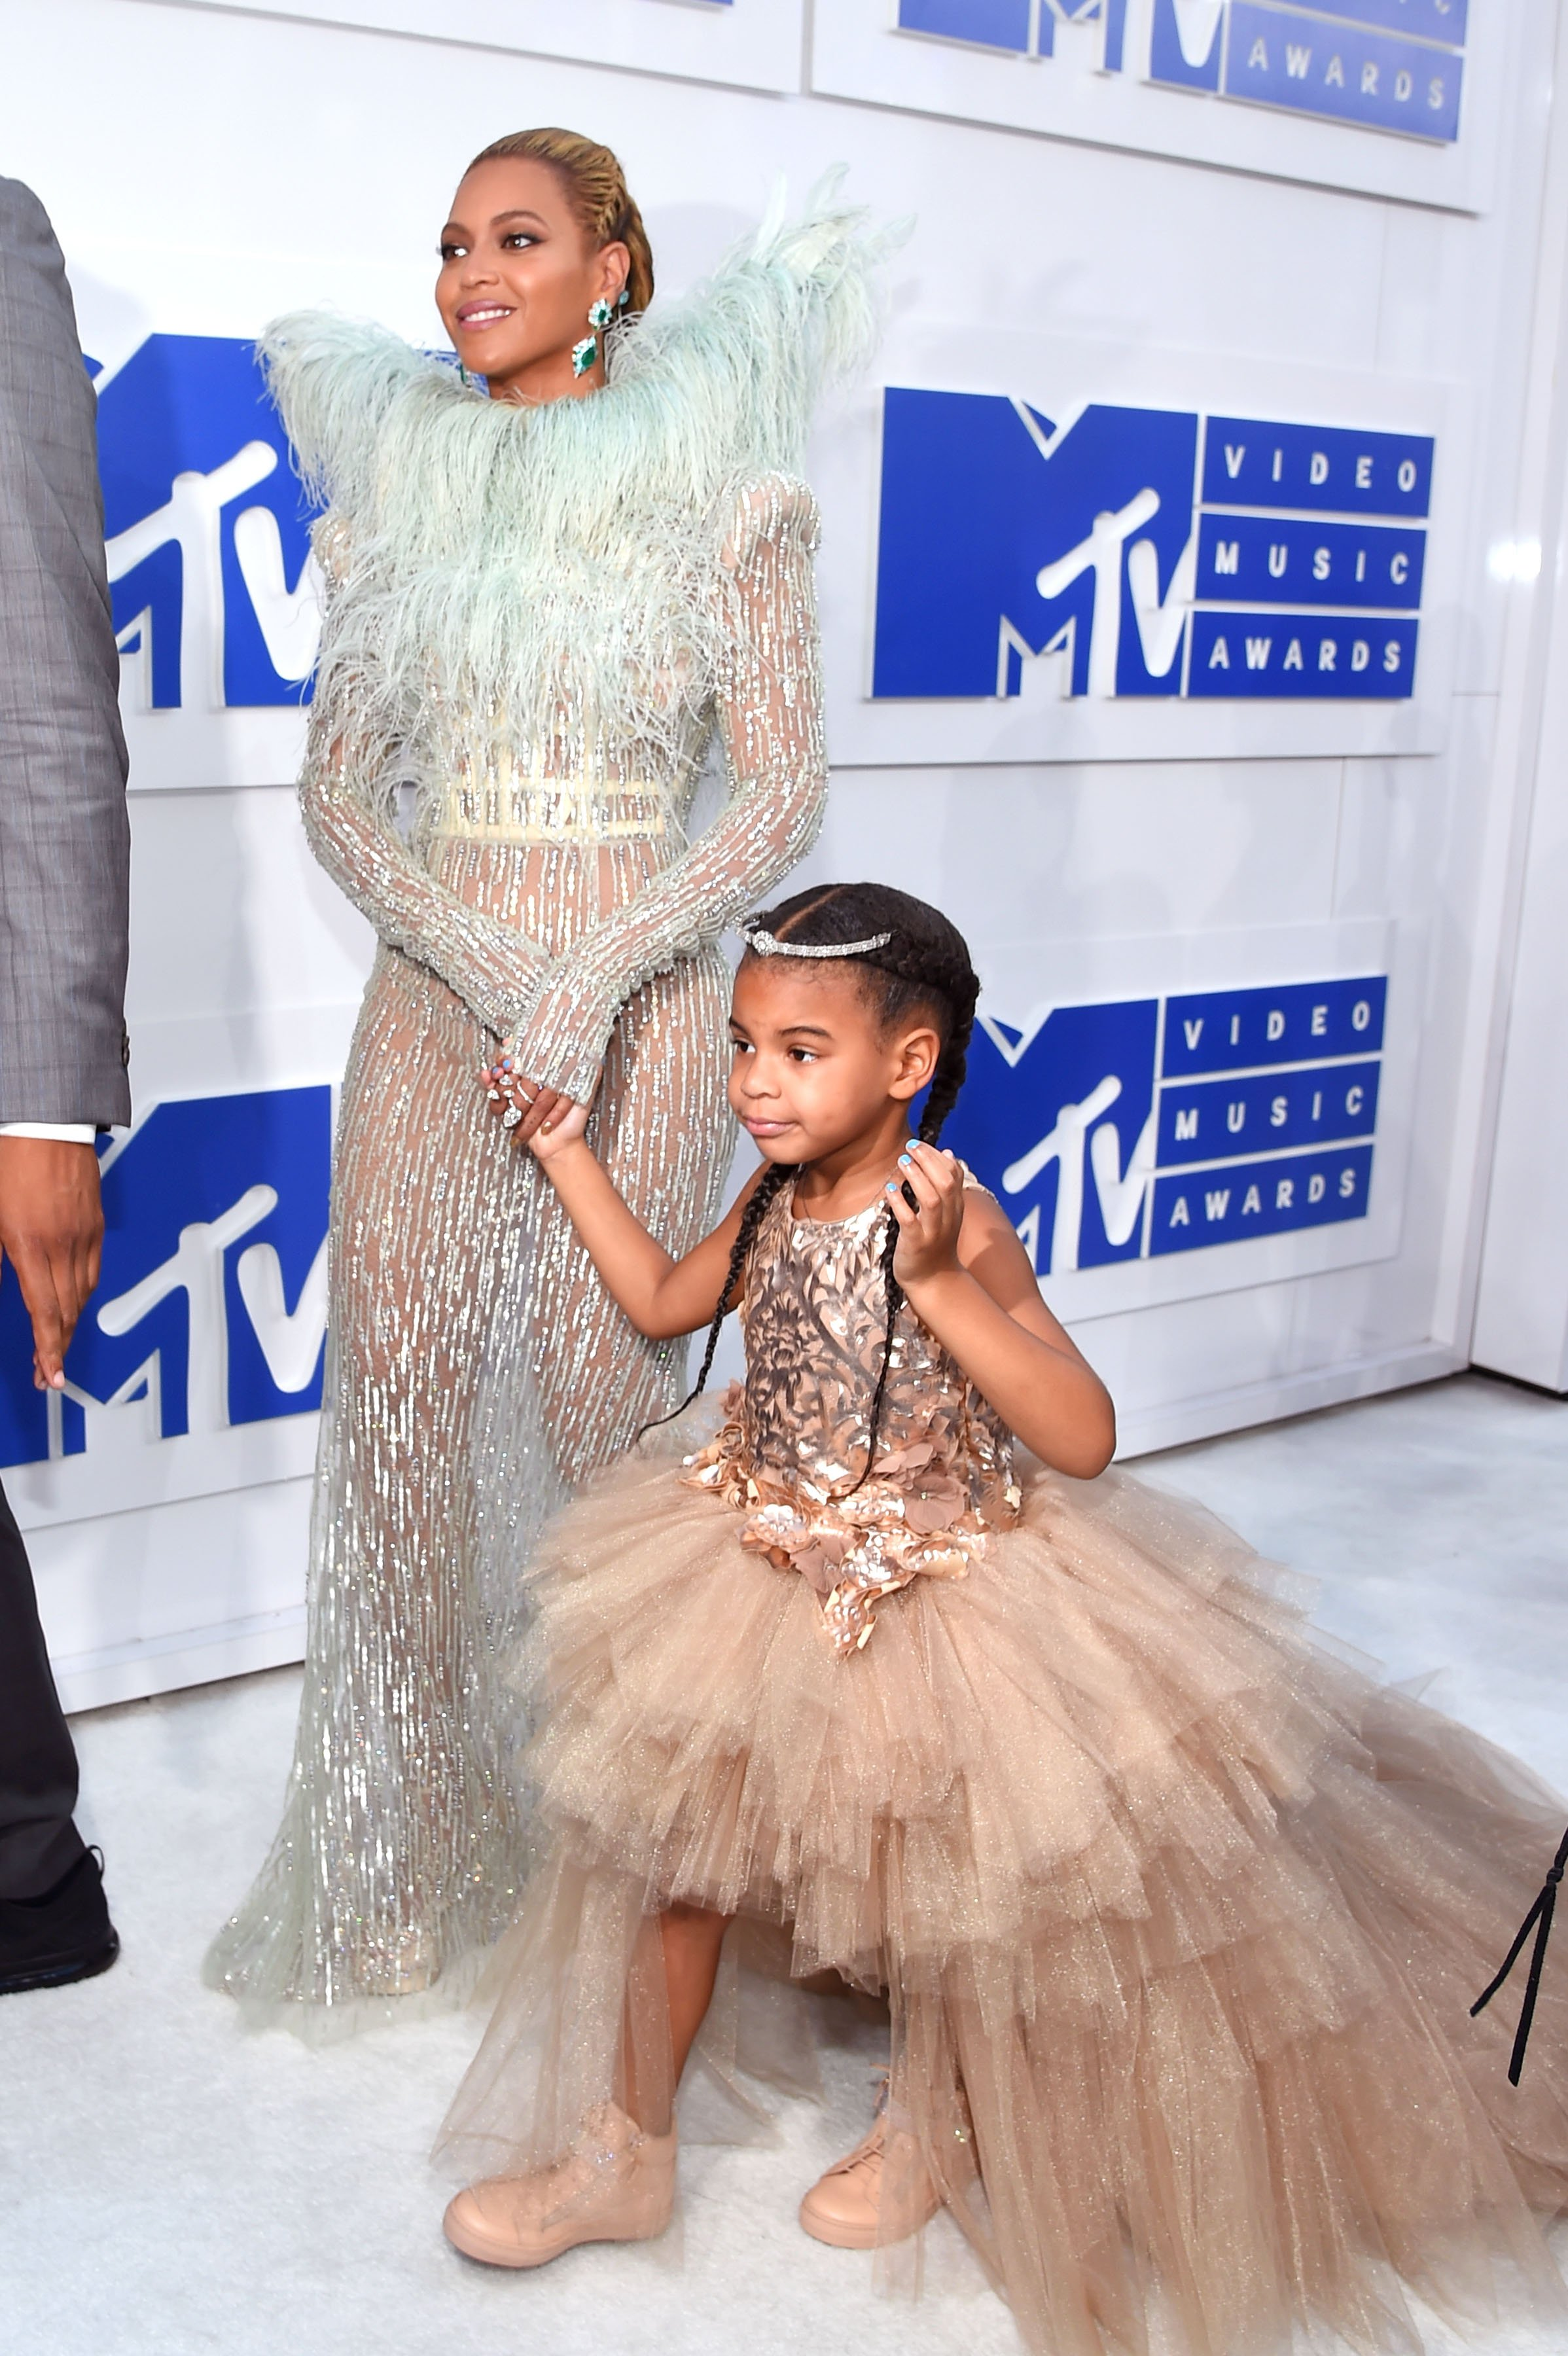 Beyoncé and Blue Ivy at the 2016 MTV Video Music Awards on August 28, 2016 in New York City. | Source: Getty Images